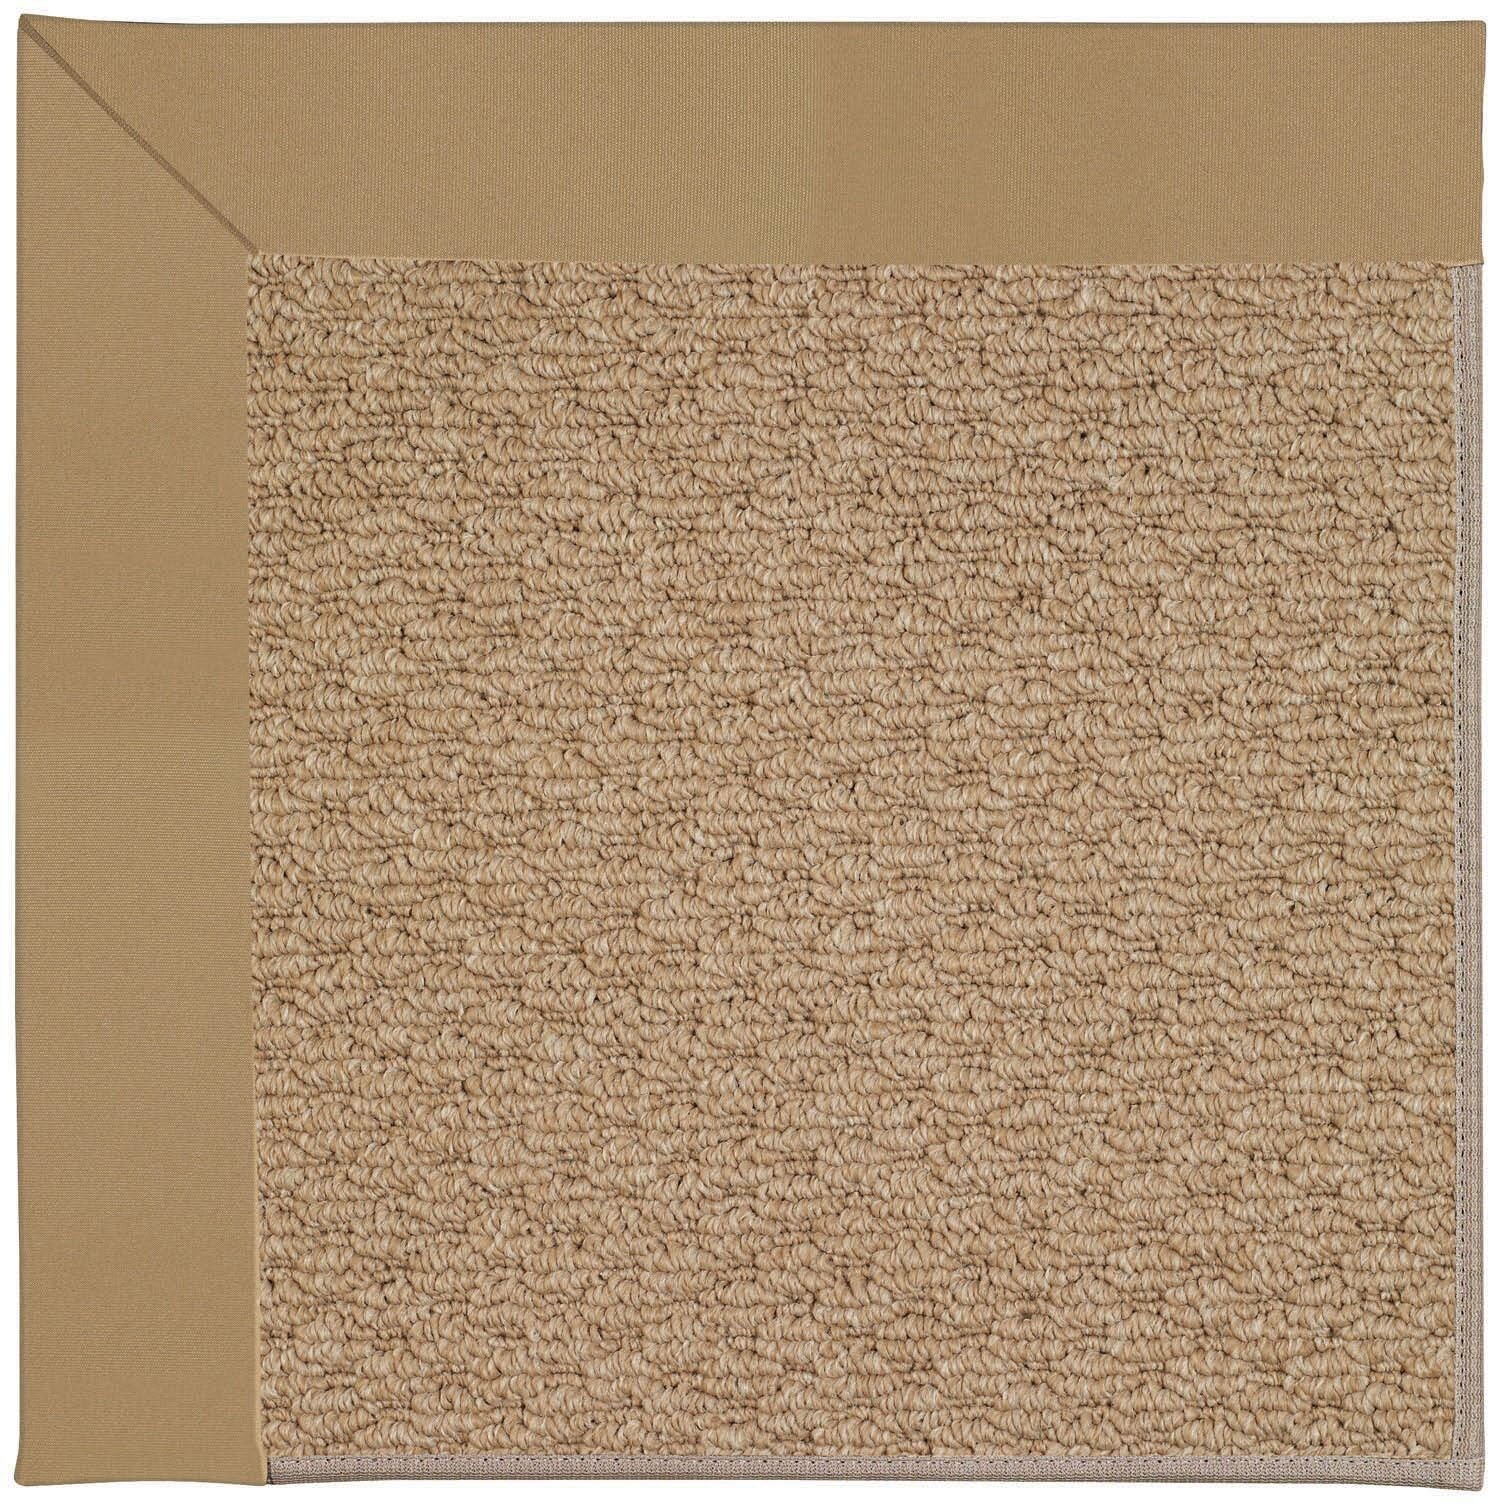 Lisle Machine Tufted Light Gold Indoor/Outdoor Area Rug Rug Size: Rectangle 10' x 14'